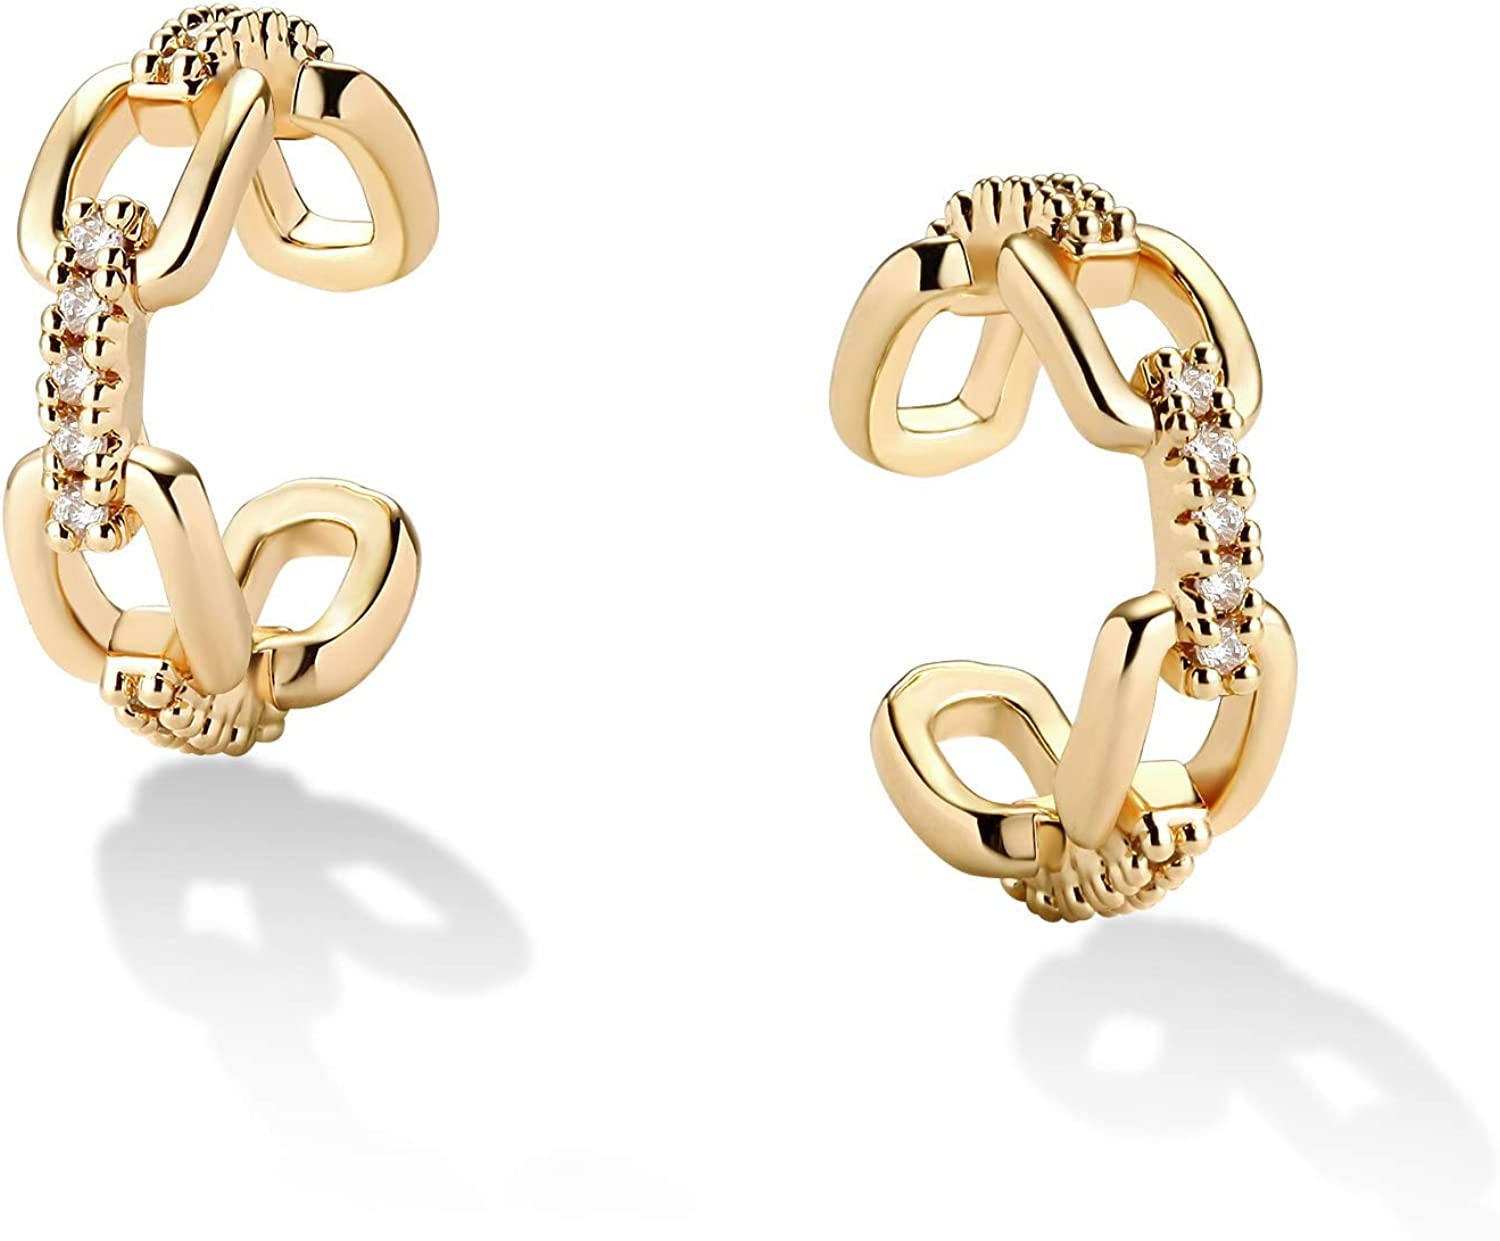 Valloey Rover 14K Gold Sales Plated Wide On Cartilag Earring Clip Seasonal Wrap Introduction Cuff